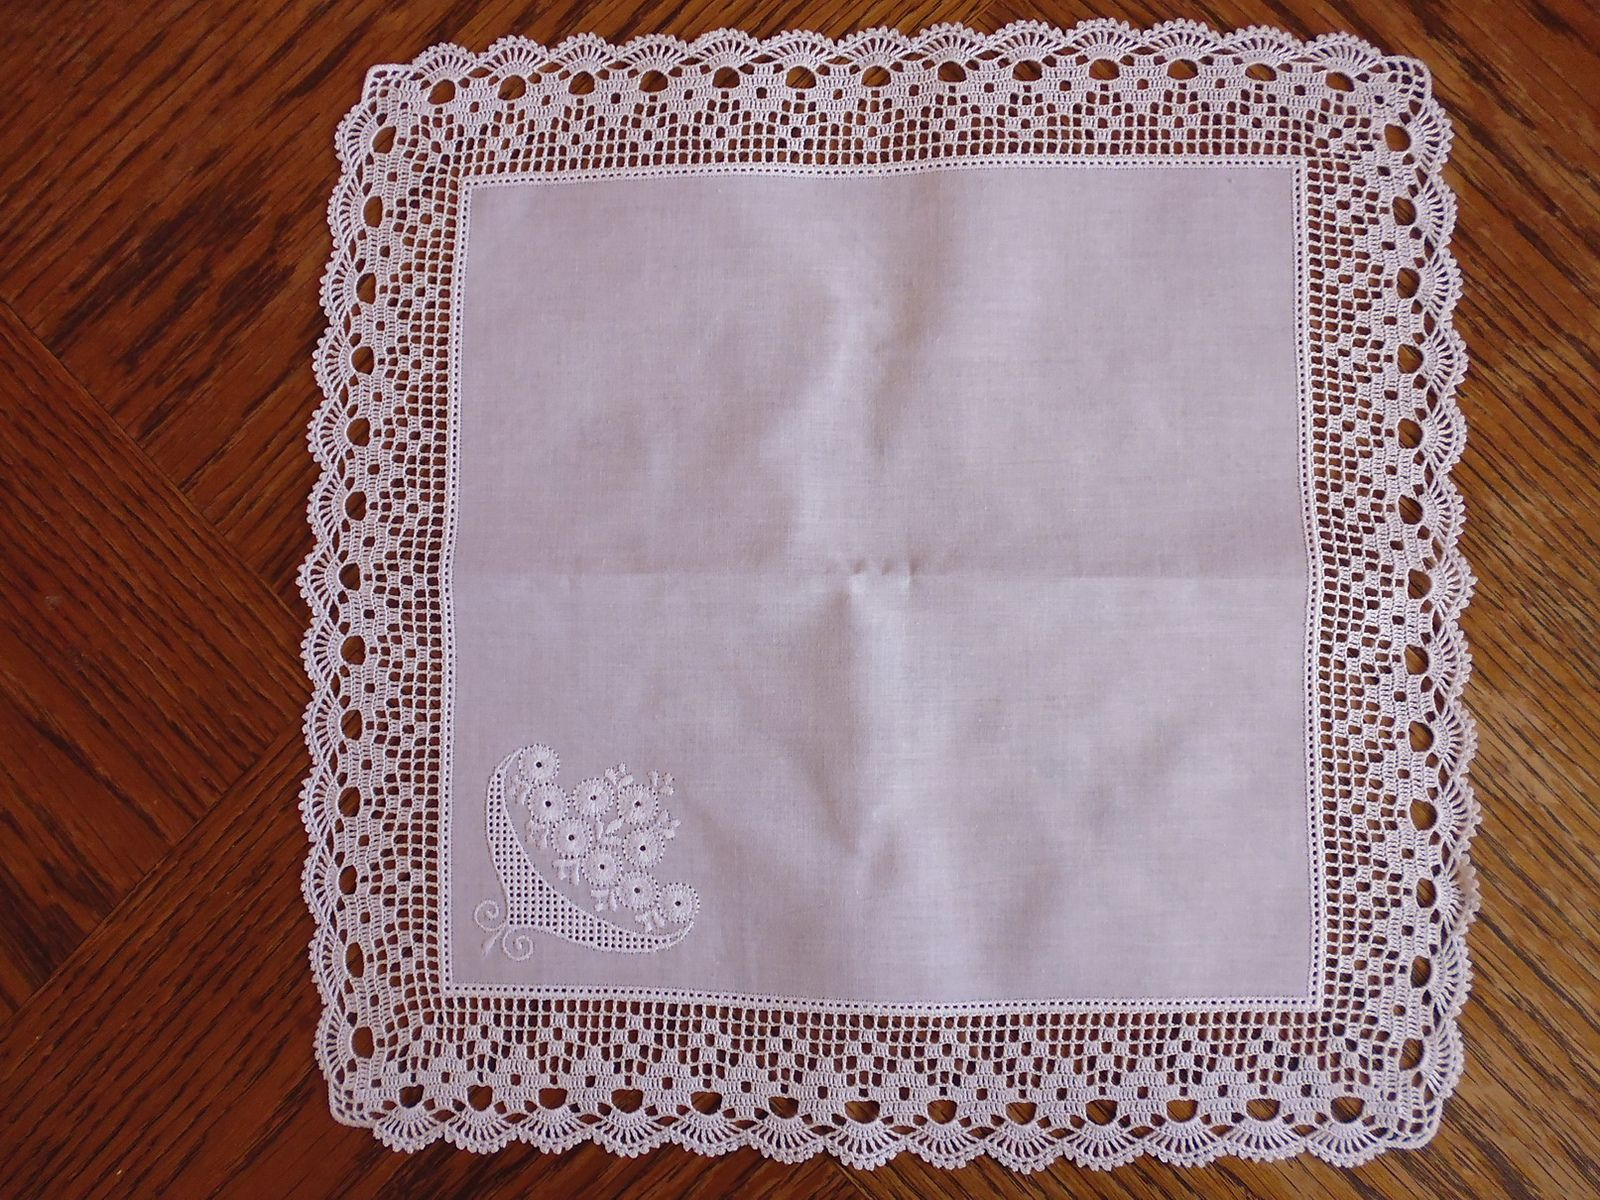 Ravelry: Handkerchief / hanky with filet edging by Doris Weide ...